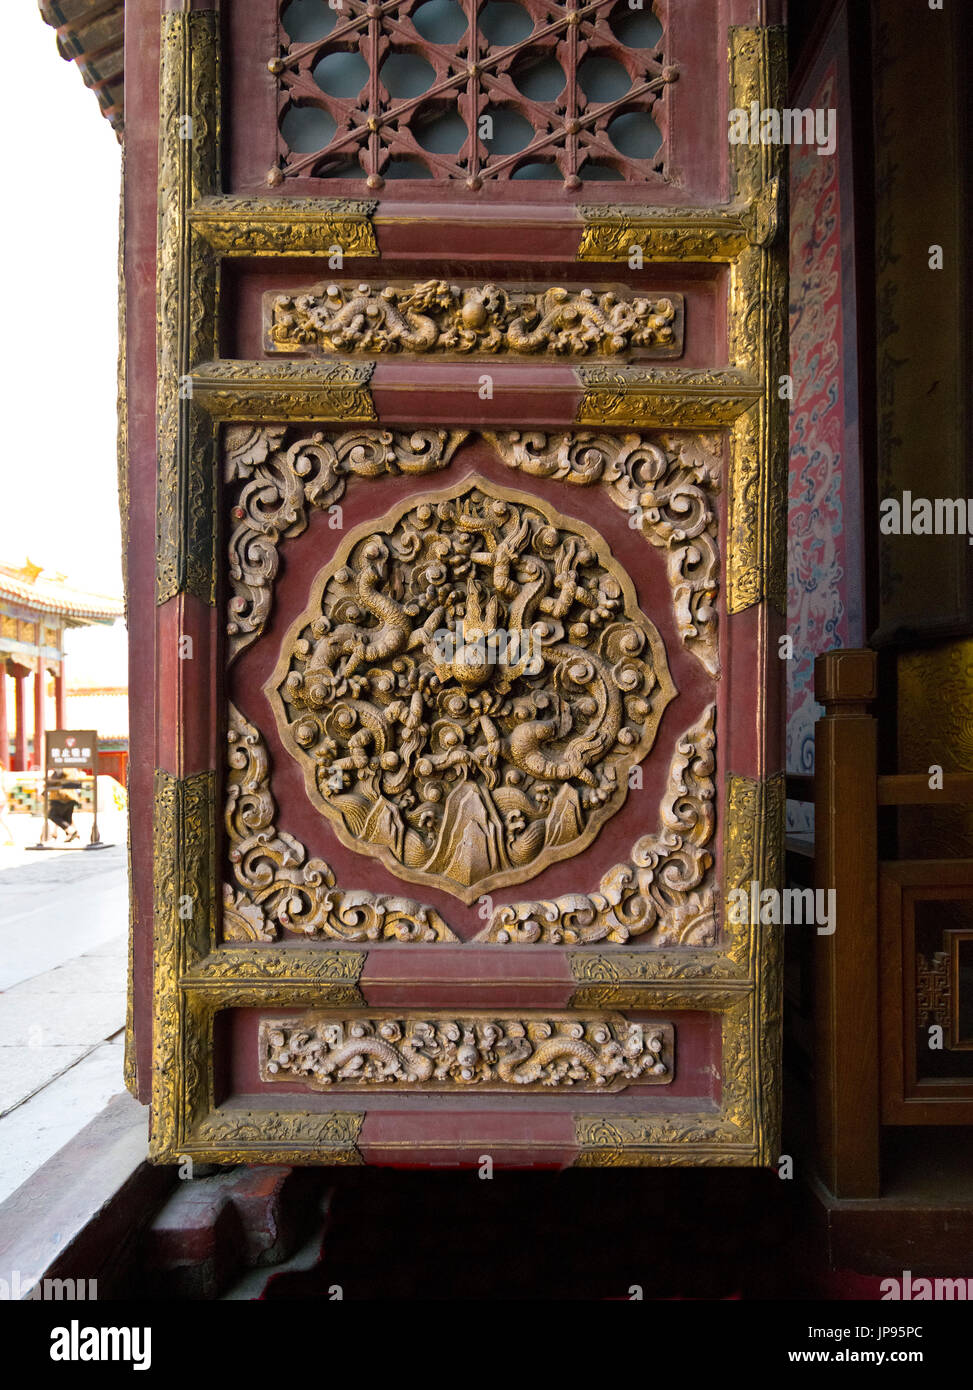 Door at The Palace of Peace and Longevity, The Forbidden City, Beijing, China - Stock Image